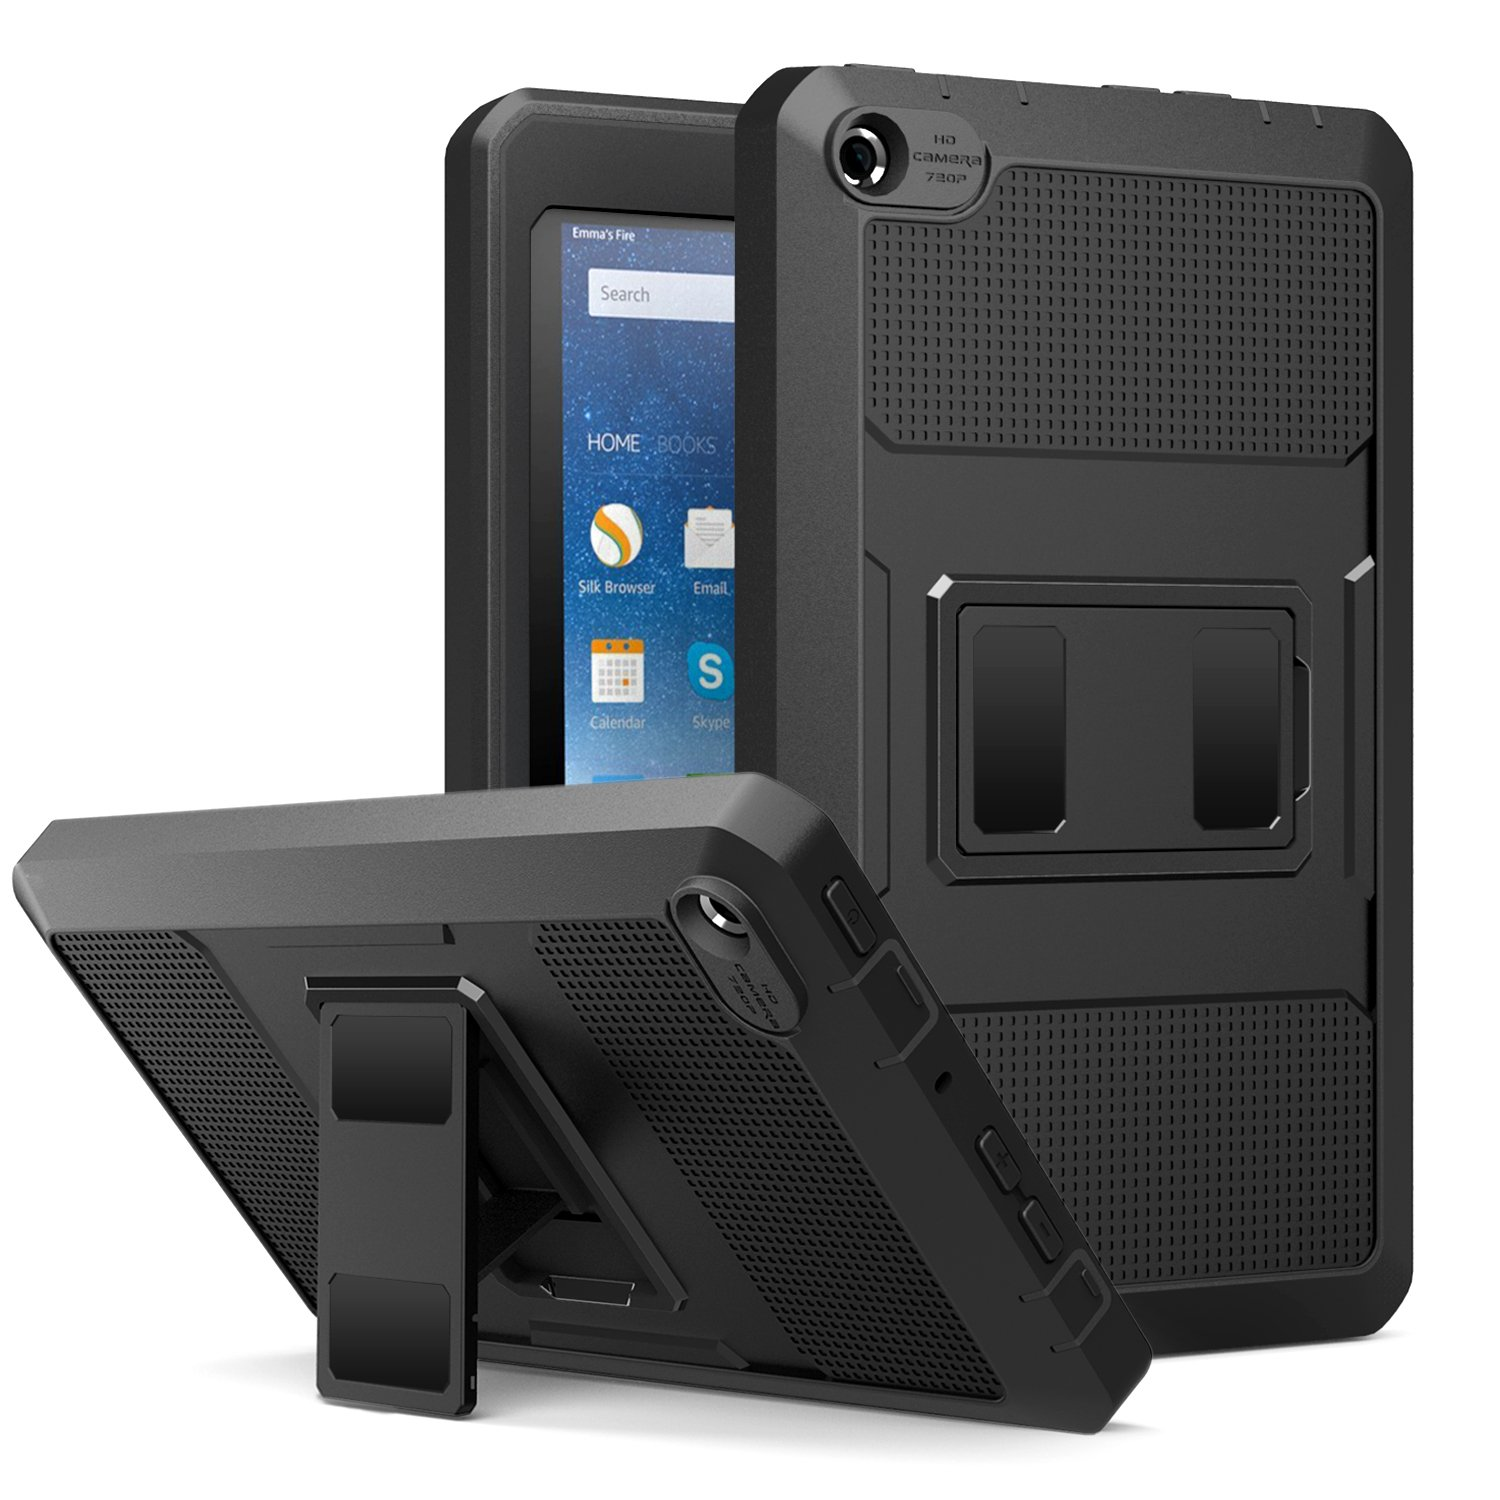 MoKo Fire 7 2015 Case - (Heavy Duty) Shockproof Defender Full Body Rugged Hybrid Cover with Built-in Screen Protector for Amazon Fire Tablet (7 inch Display - 5th Generation, 2015 Release Only), BLACK